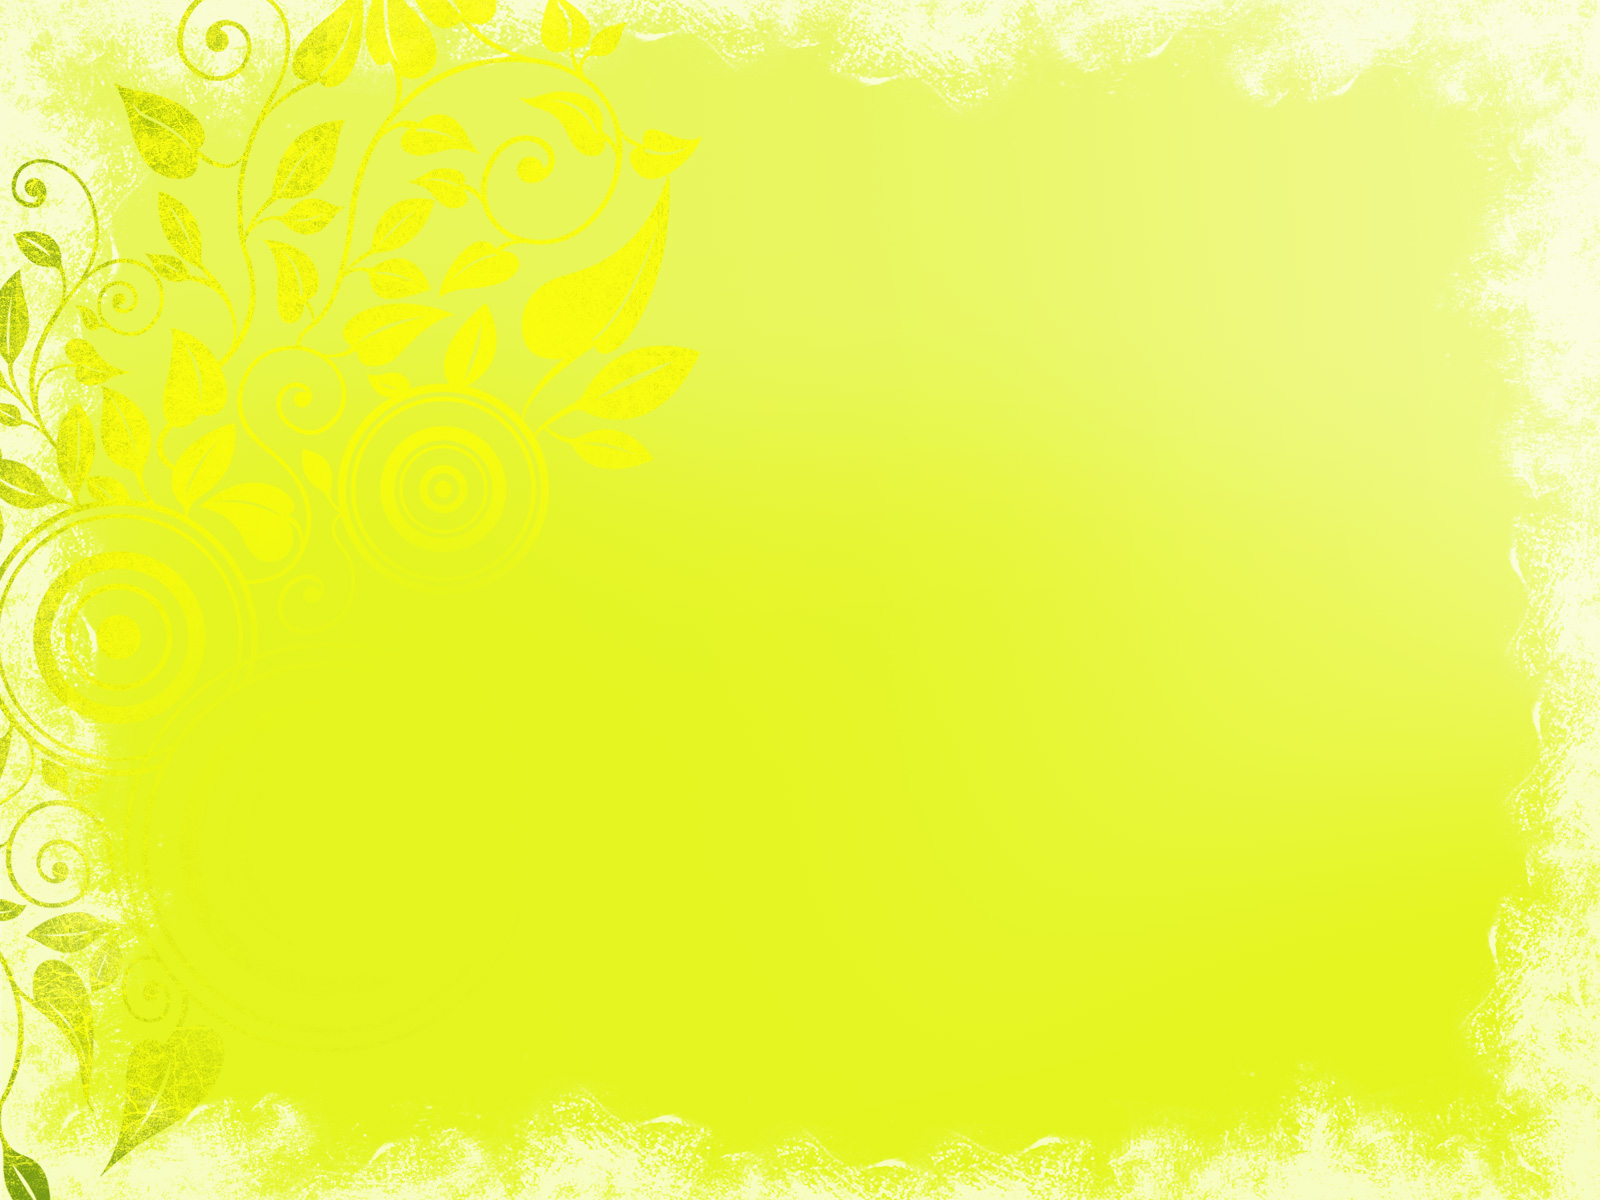 Free Yellow Ornament Background for Powerpoint Slides